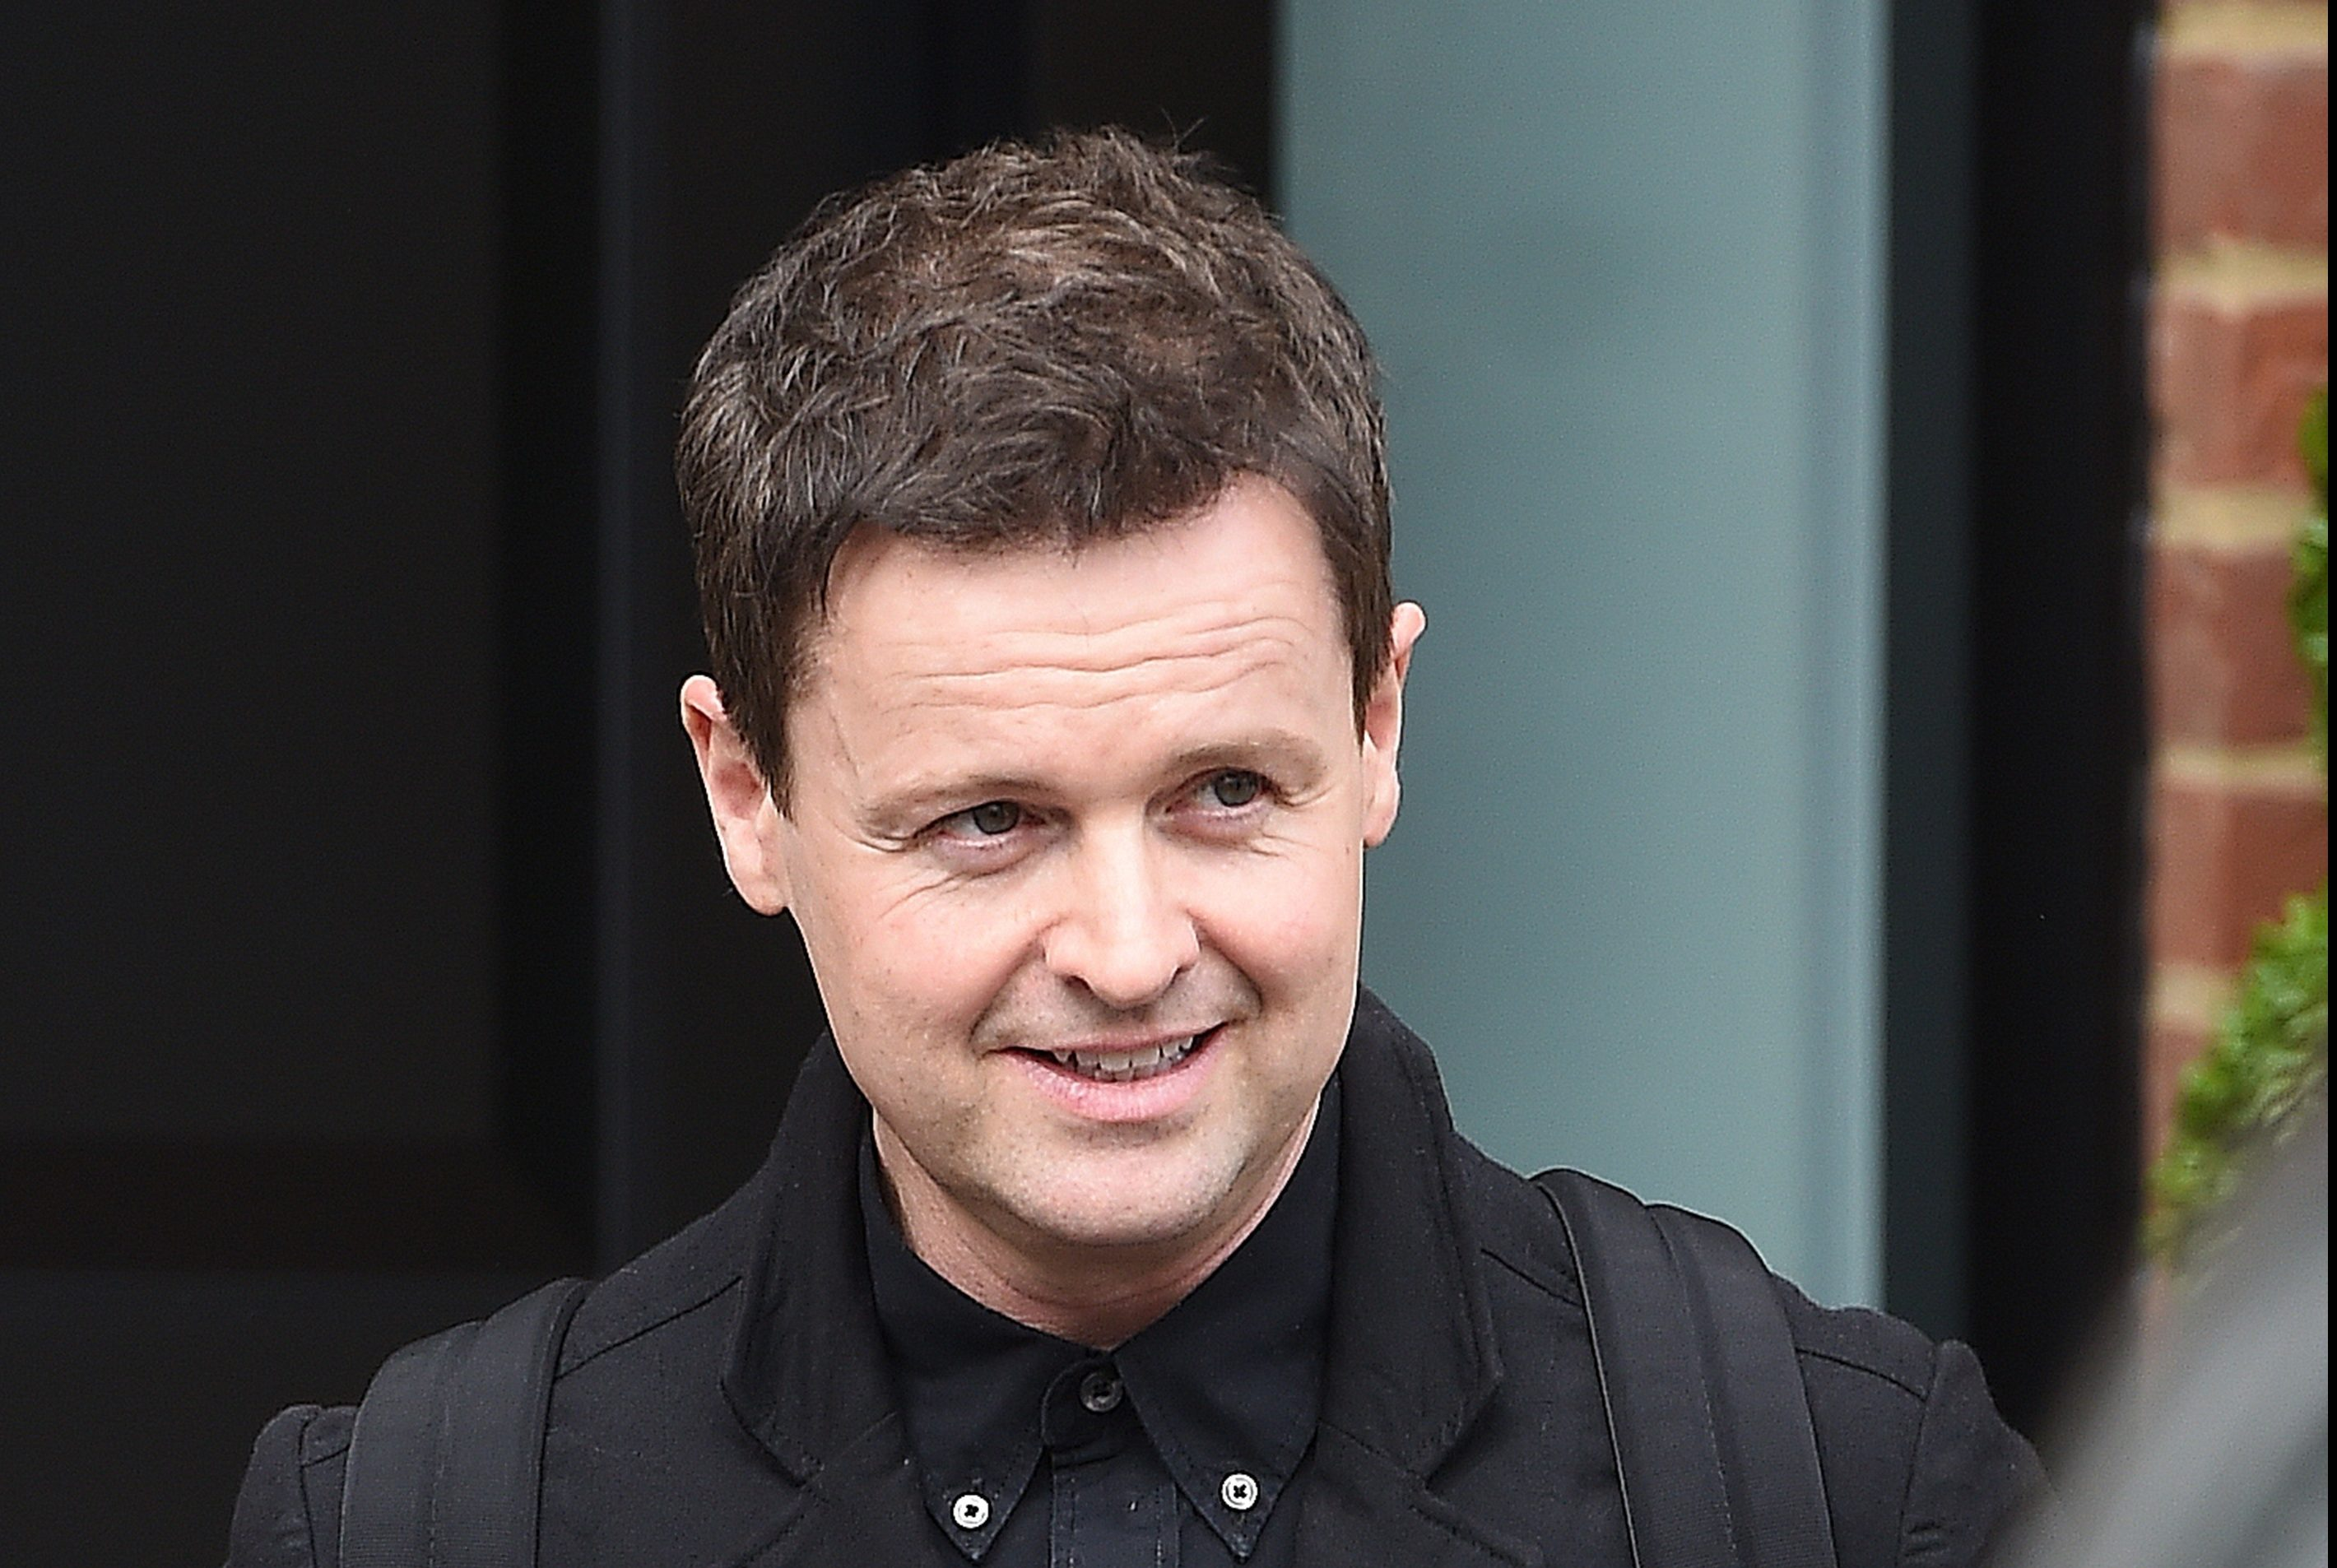 Dec Donnelly shares glimpse into 44th birthday celebrations